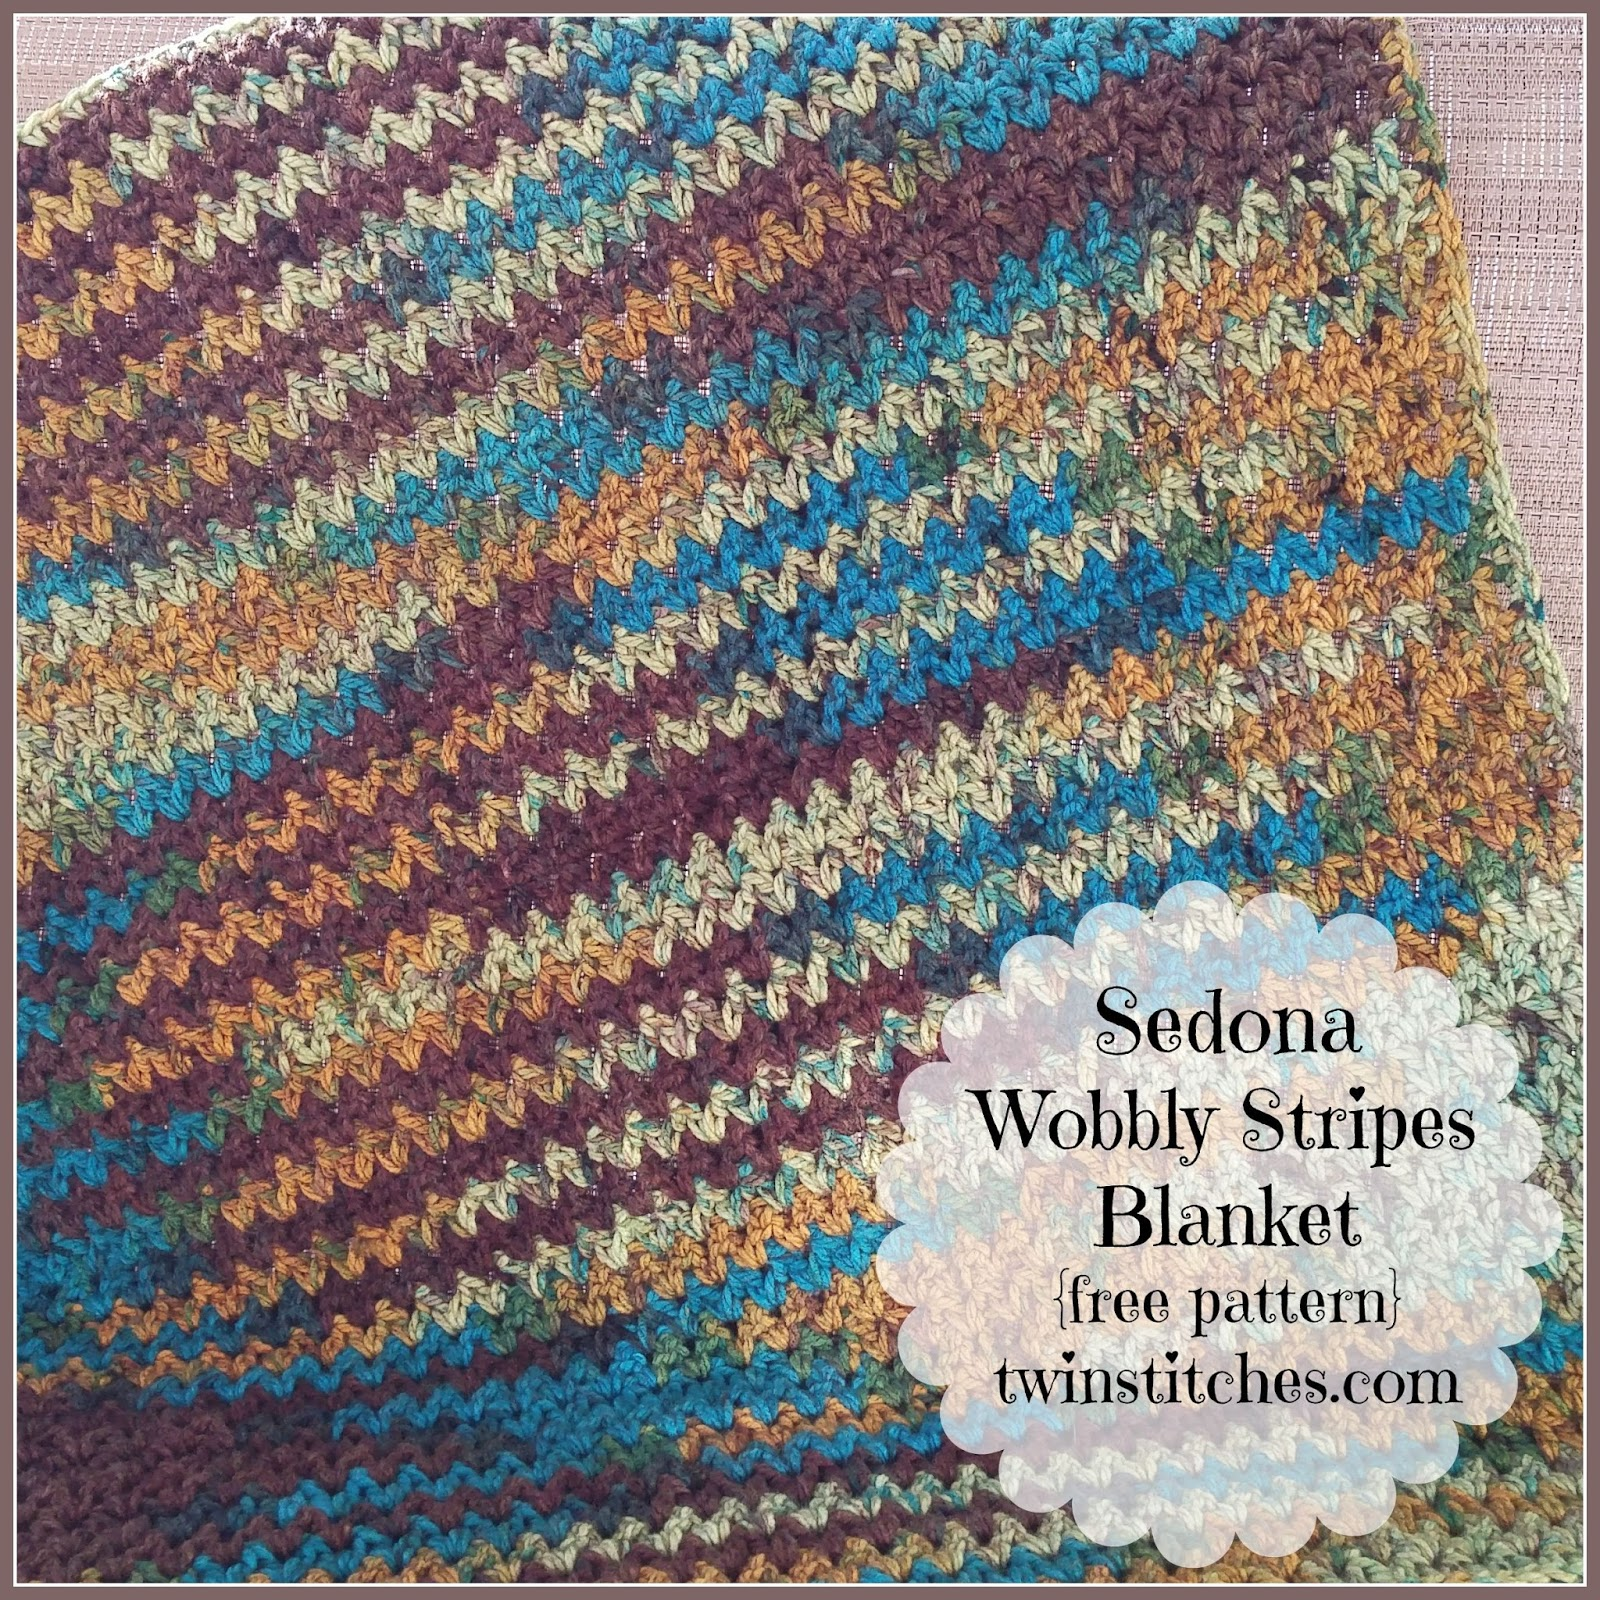 Tw-In Stitches: Sedona Wobbly Stripes Blanket - Free Pattern | Tw-In